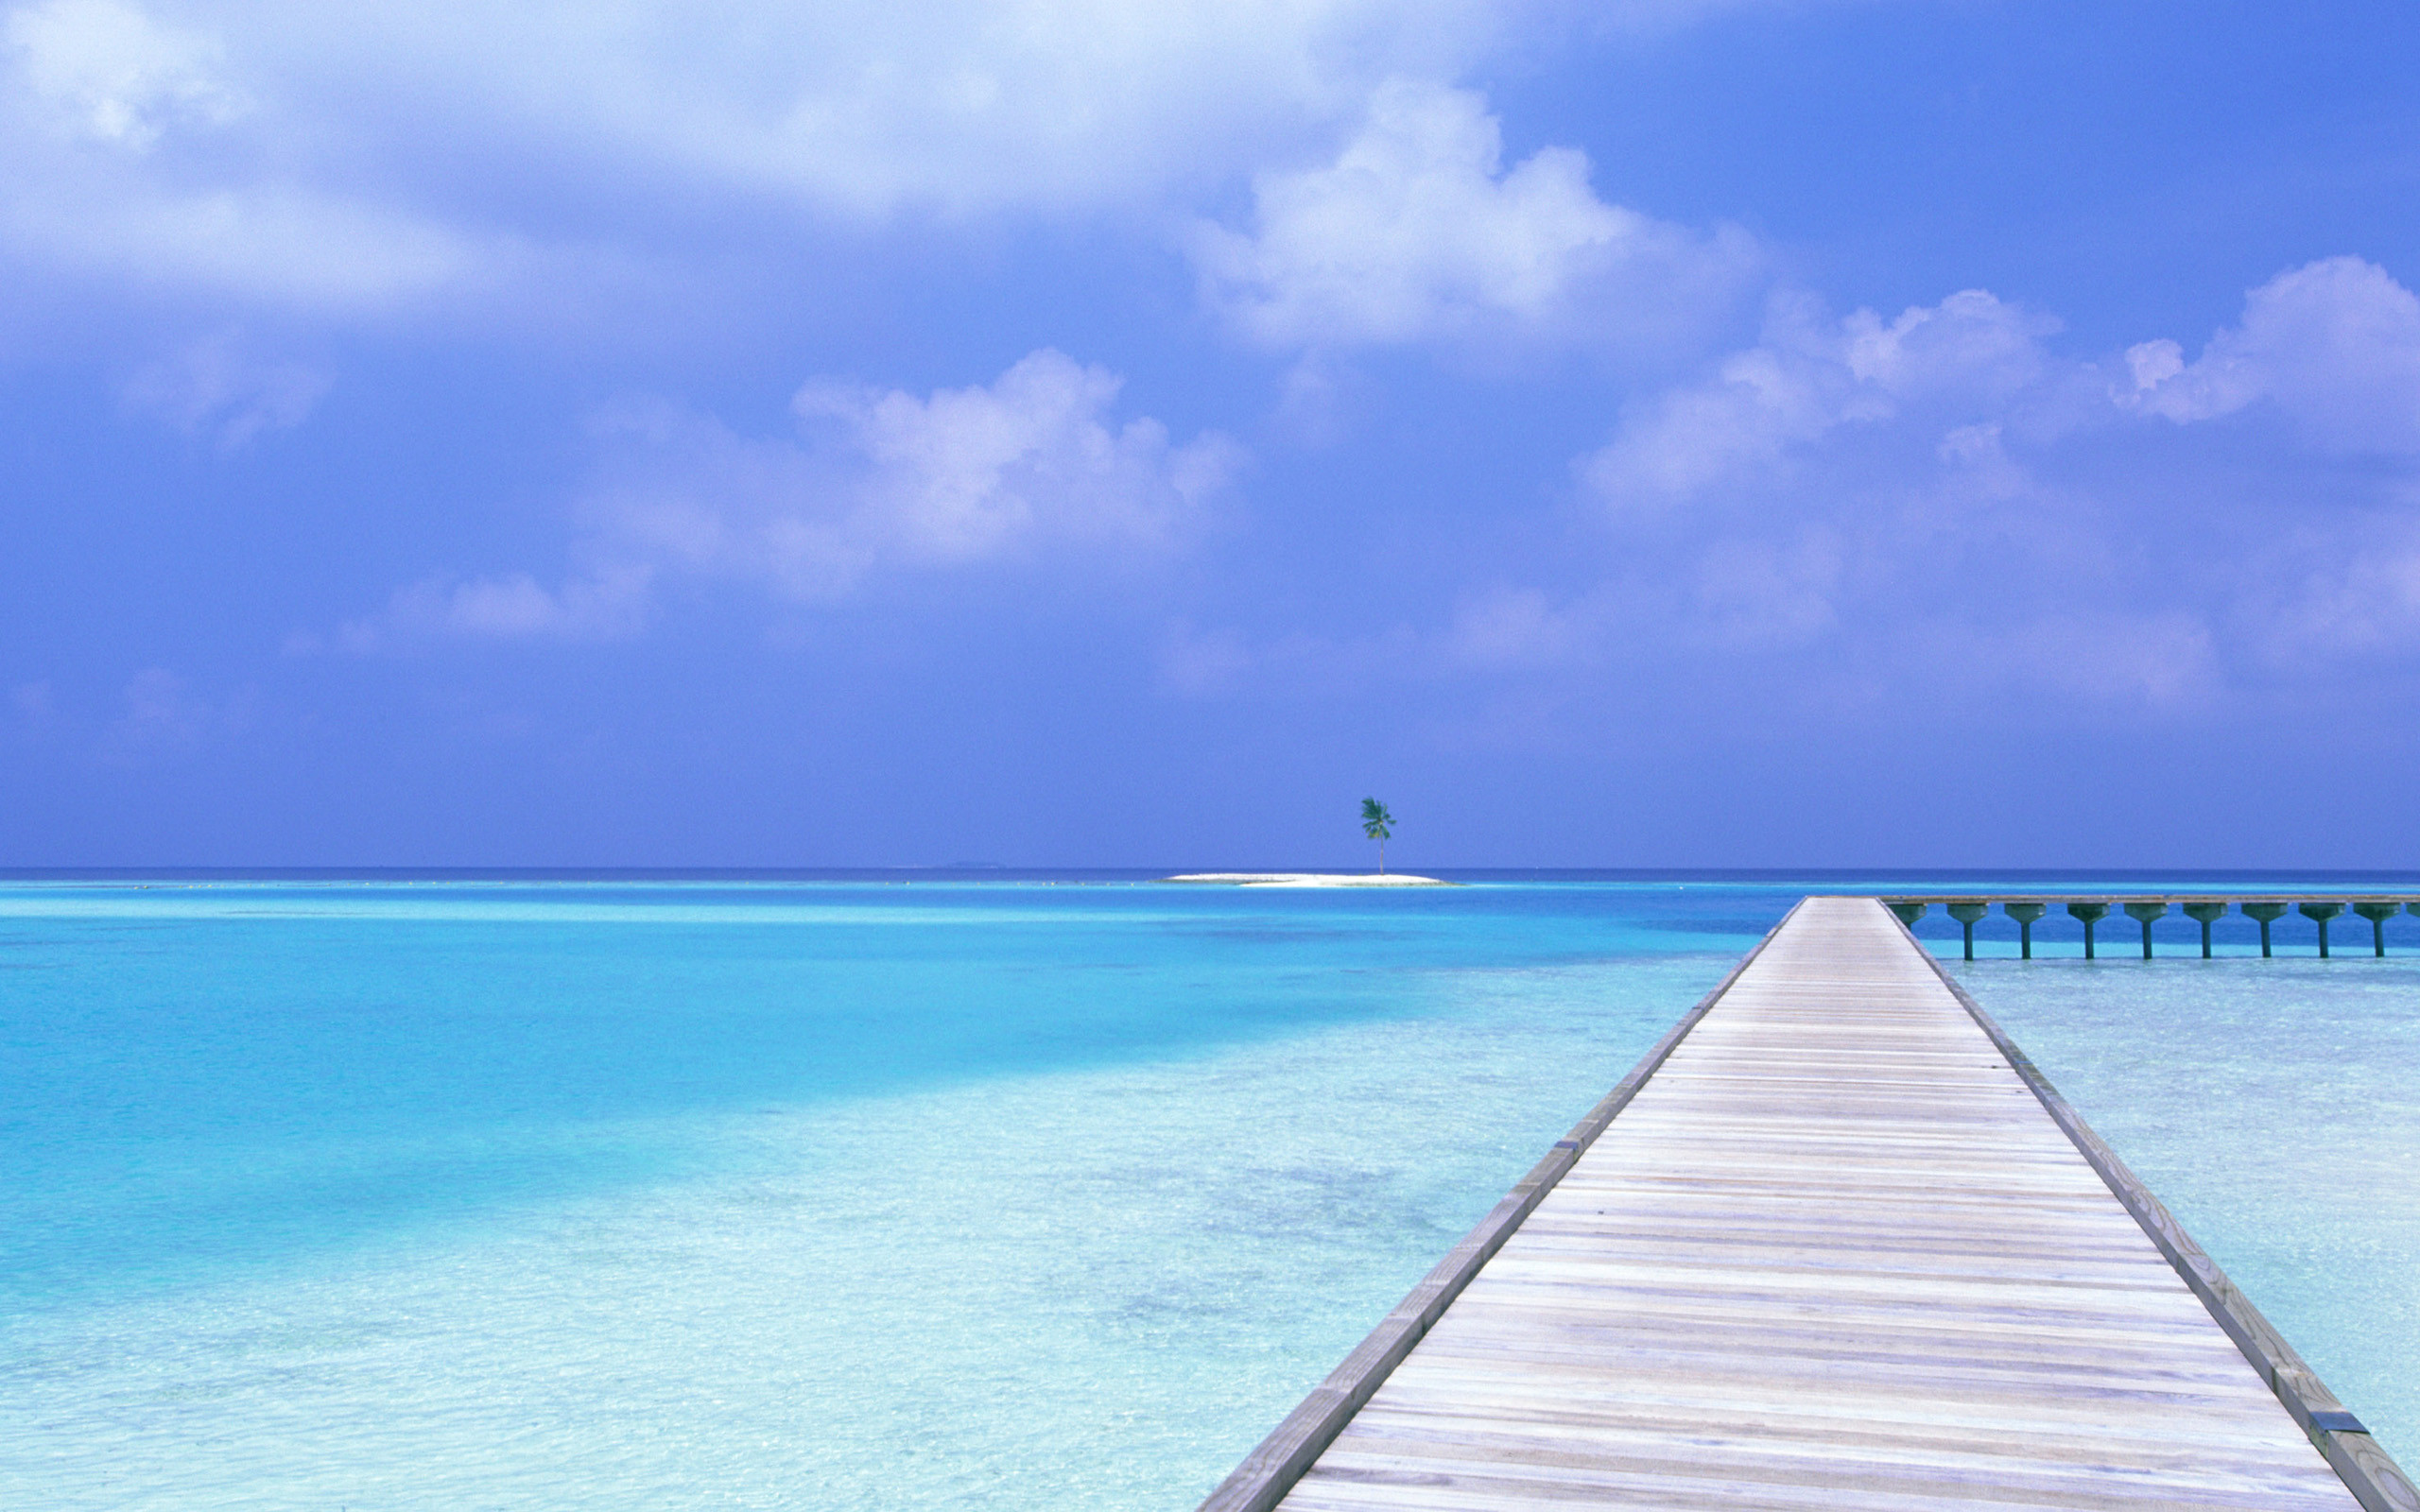 2560x1600 Tags: Blue Water